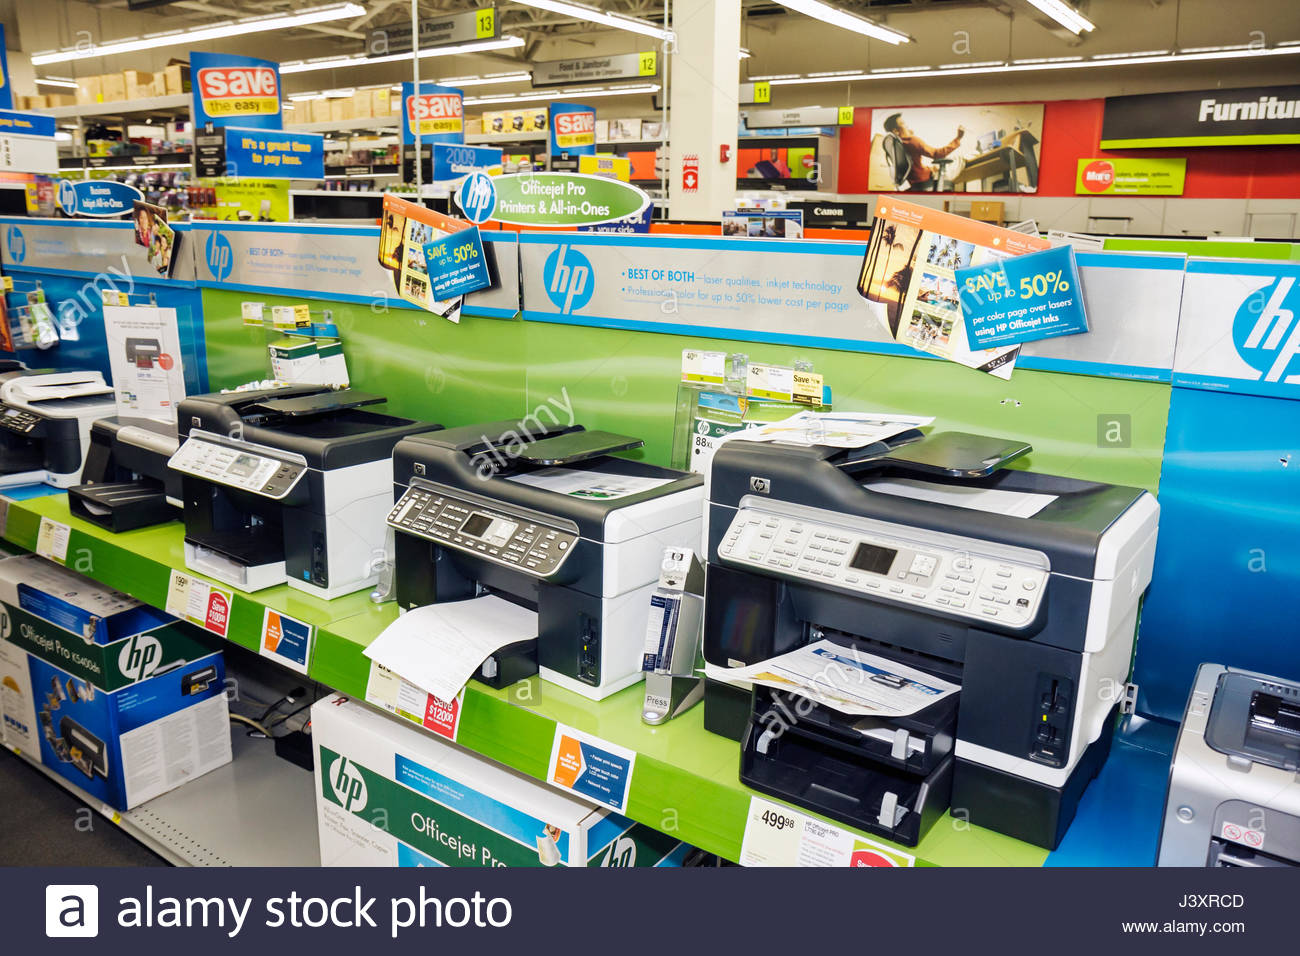 office merchandise. Miami Florida Staples Office Supply Products Store Retail Business Chain Merchandise Display Printer Lexmark All-in-one Wireless I